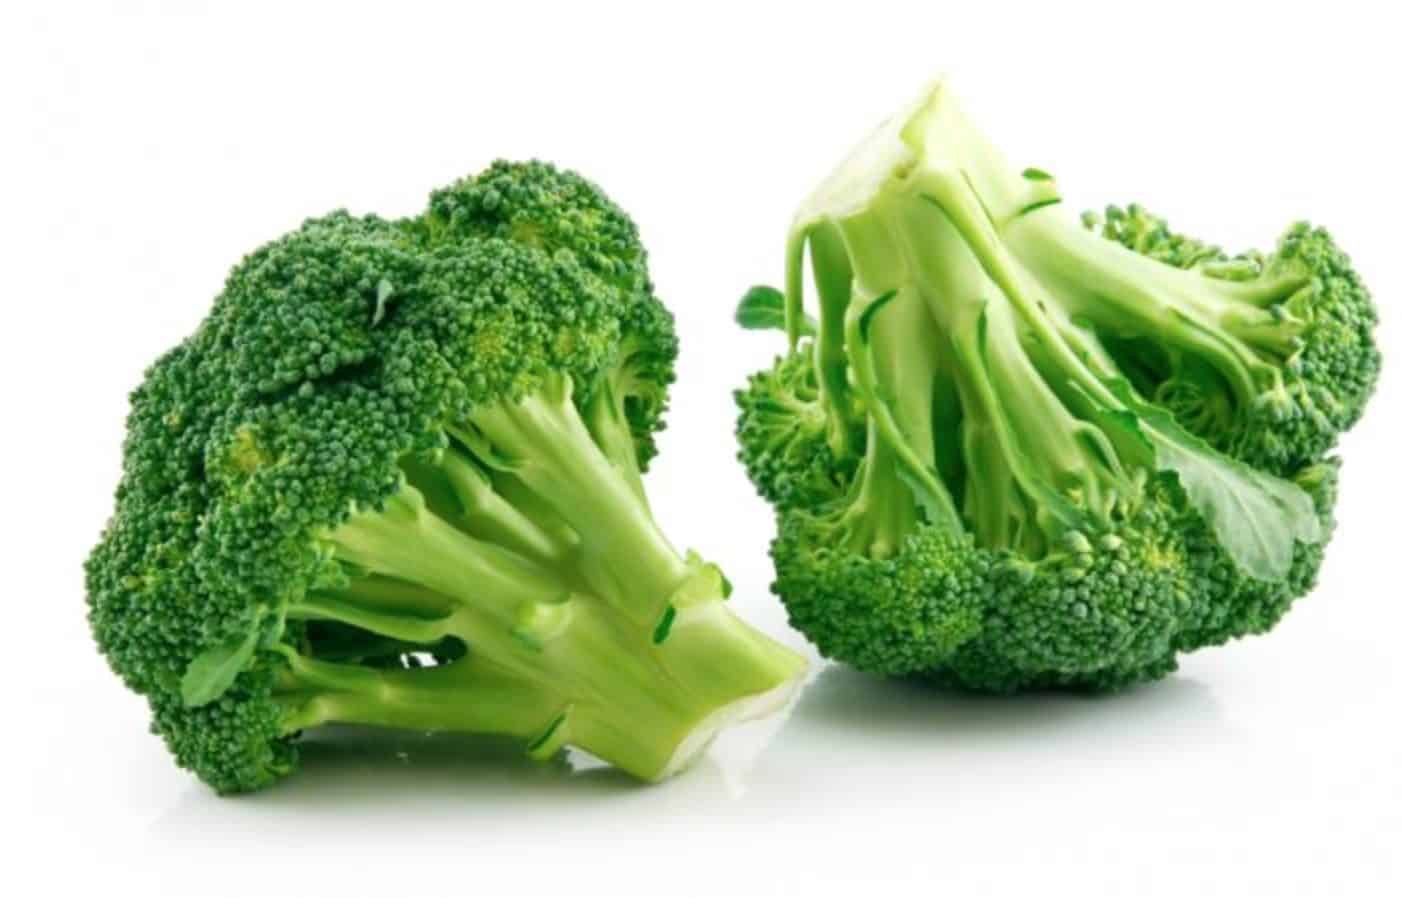 If you feed your dog broccoli, they may experience several amazing health benefits.